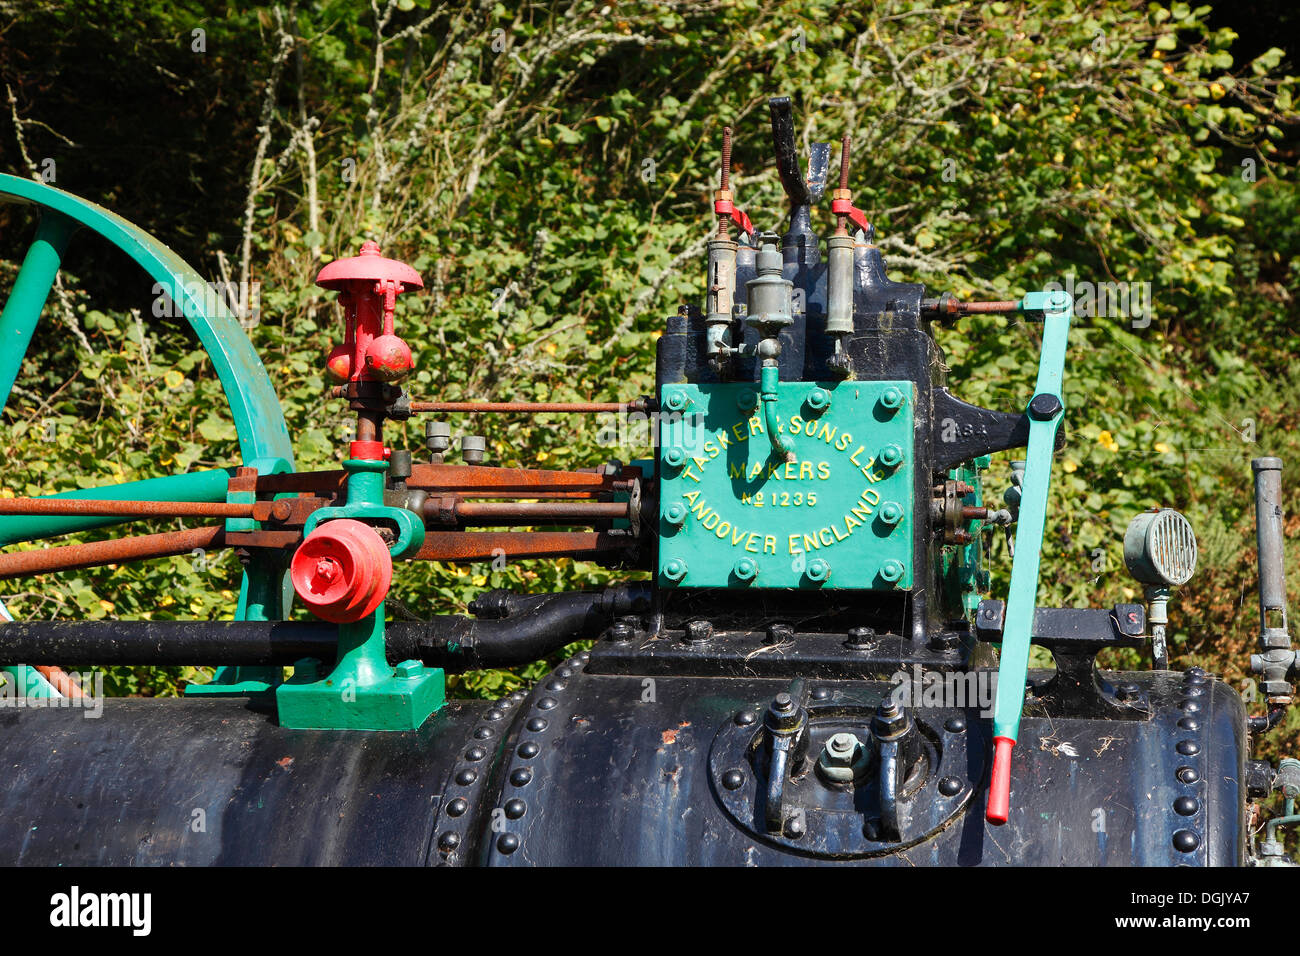 tasker-steam-engine-valve-gear-isle-of-w